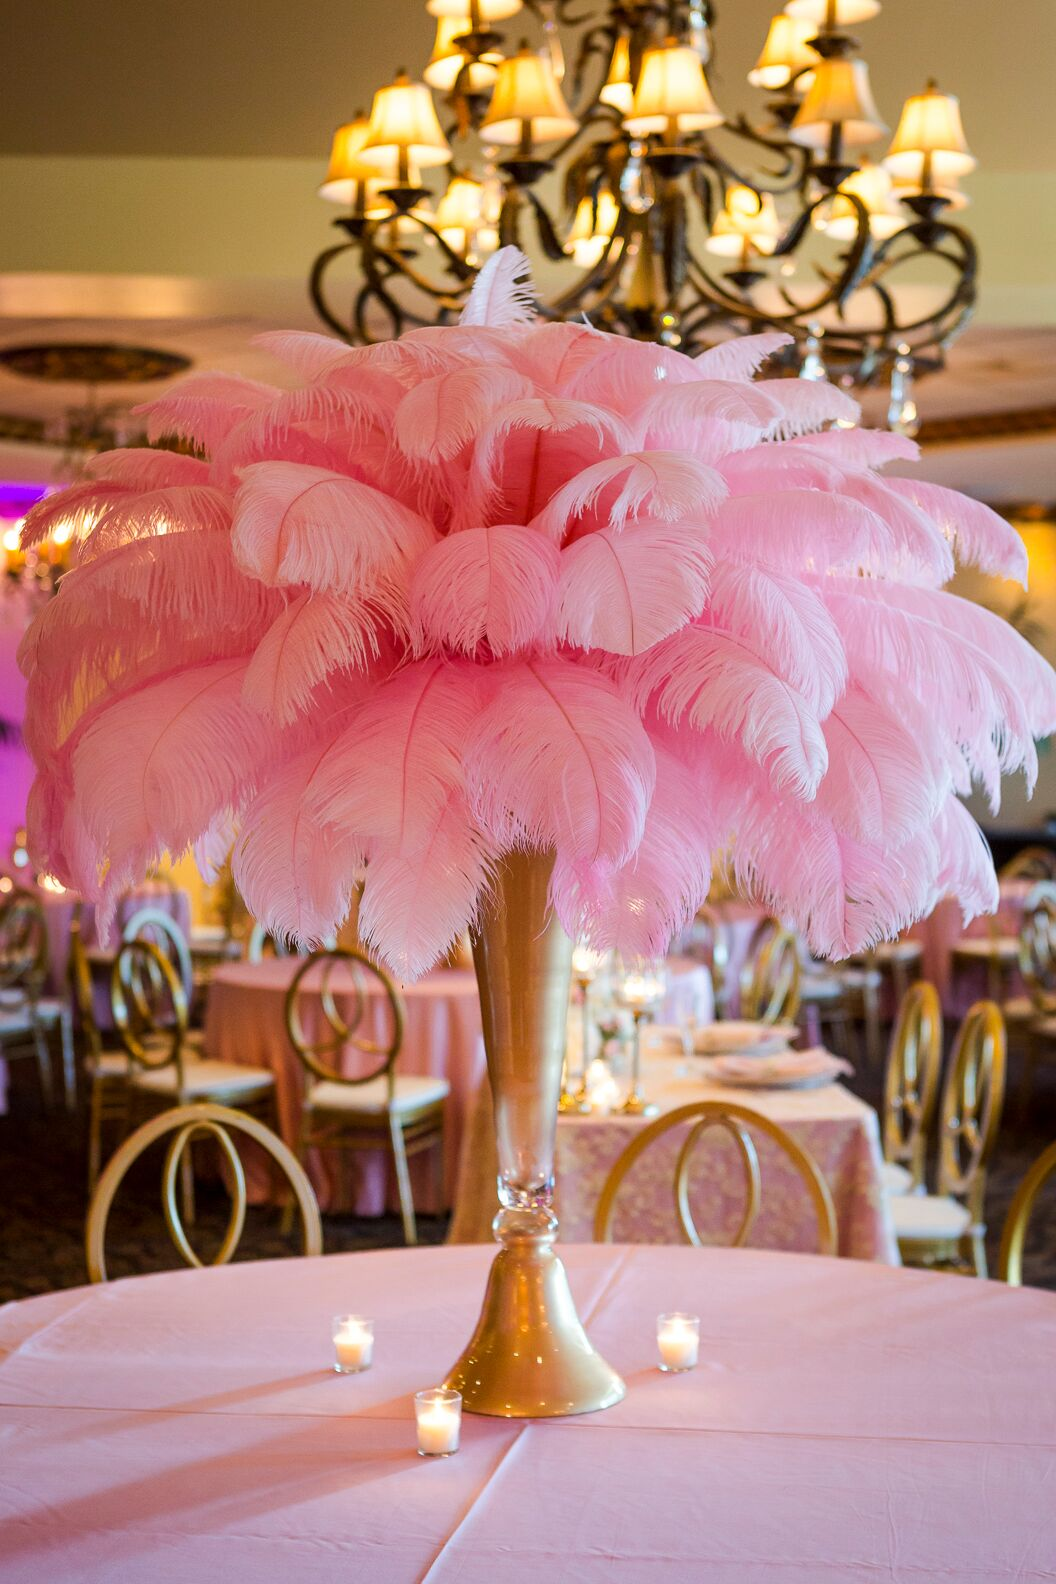 Wedding Planners in New Orleans, LA - The Knot